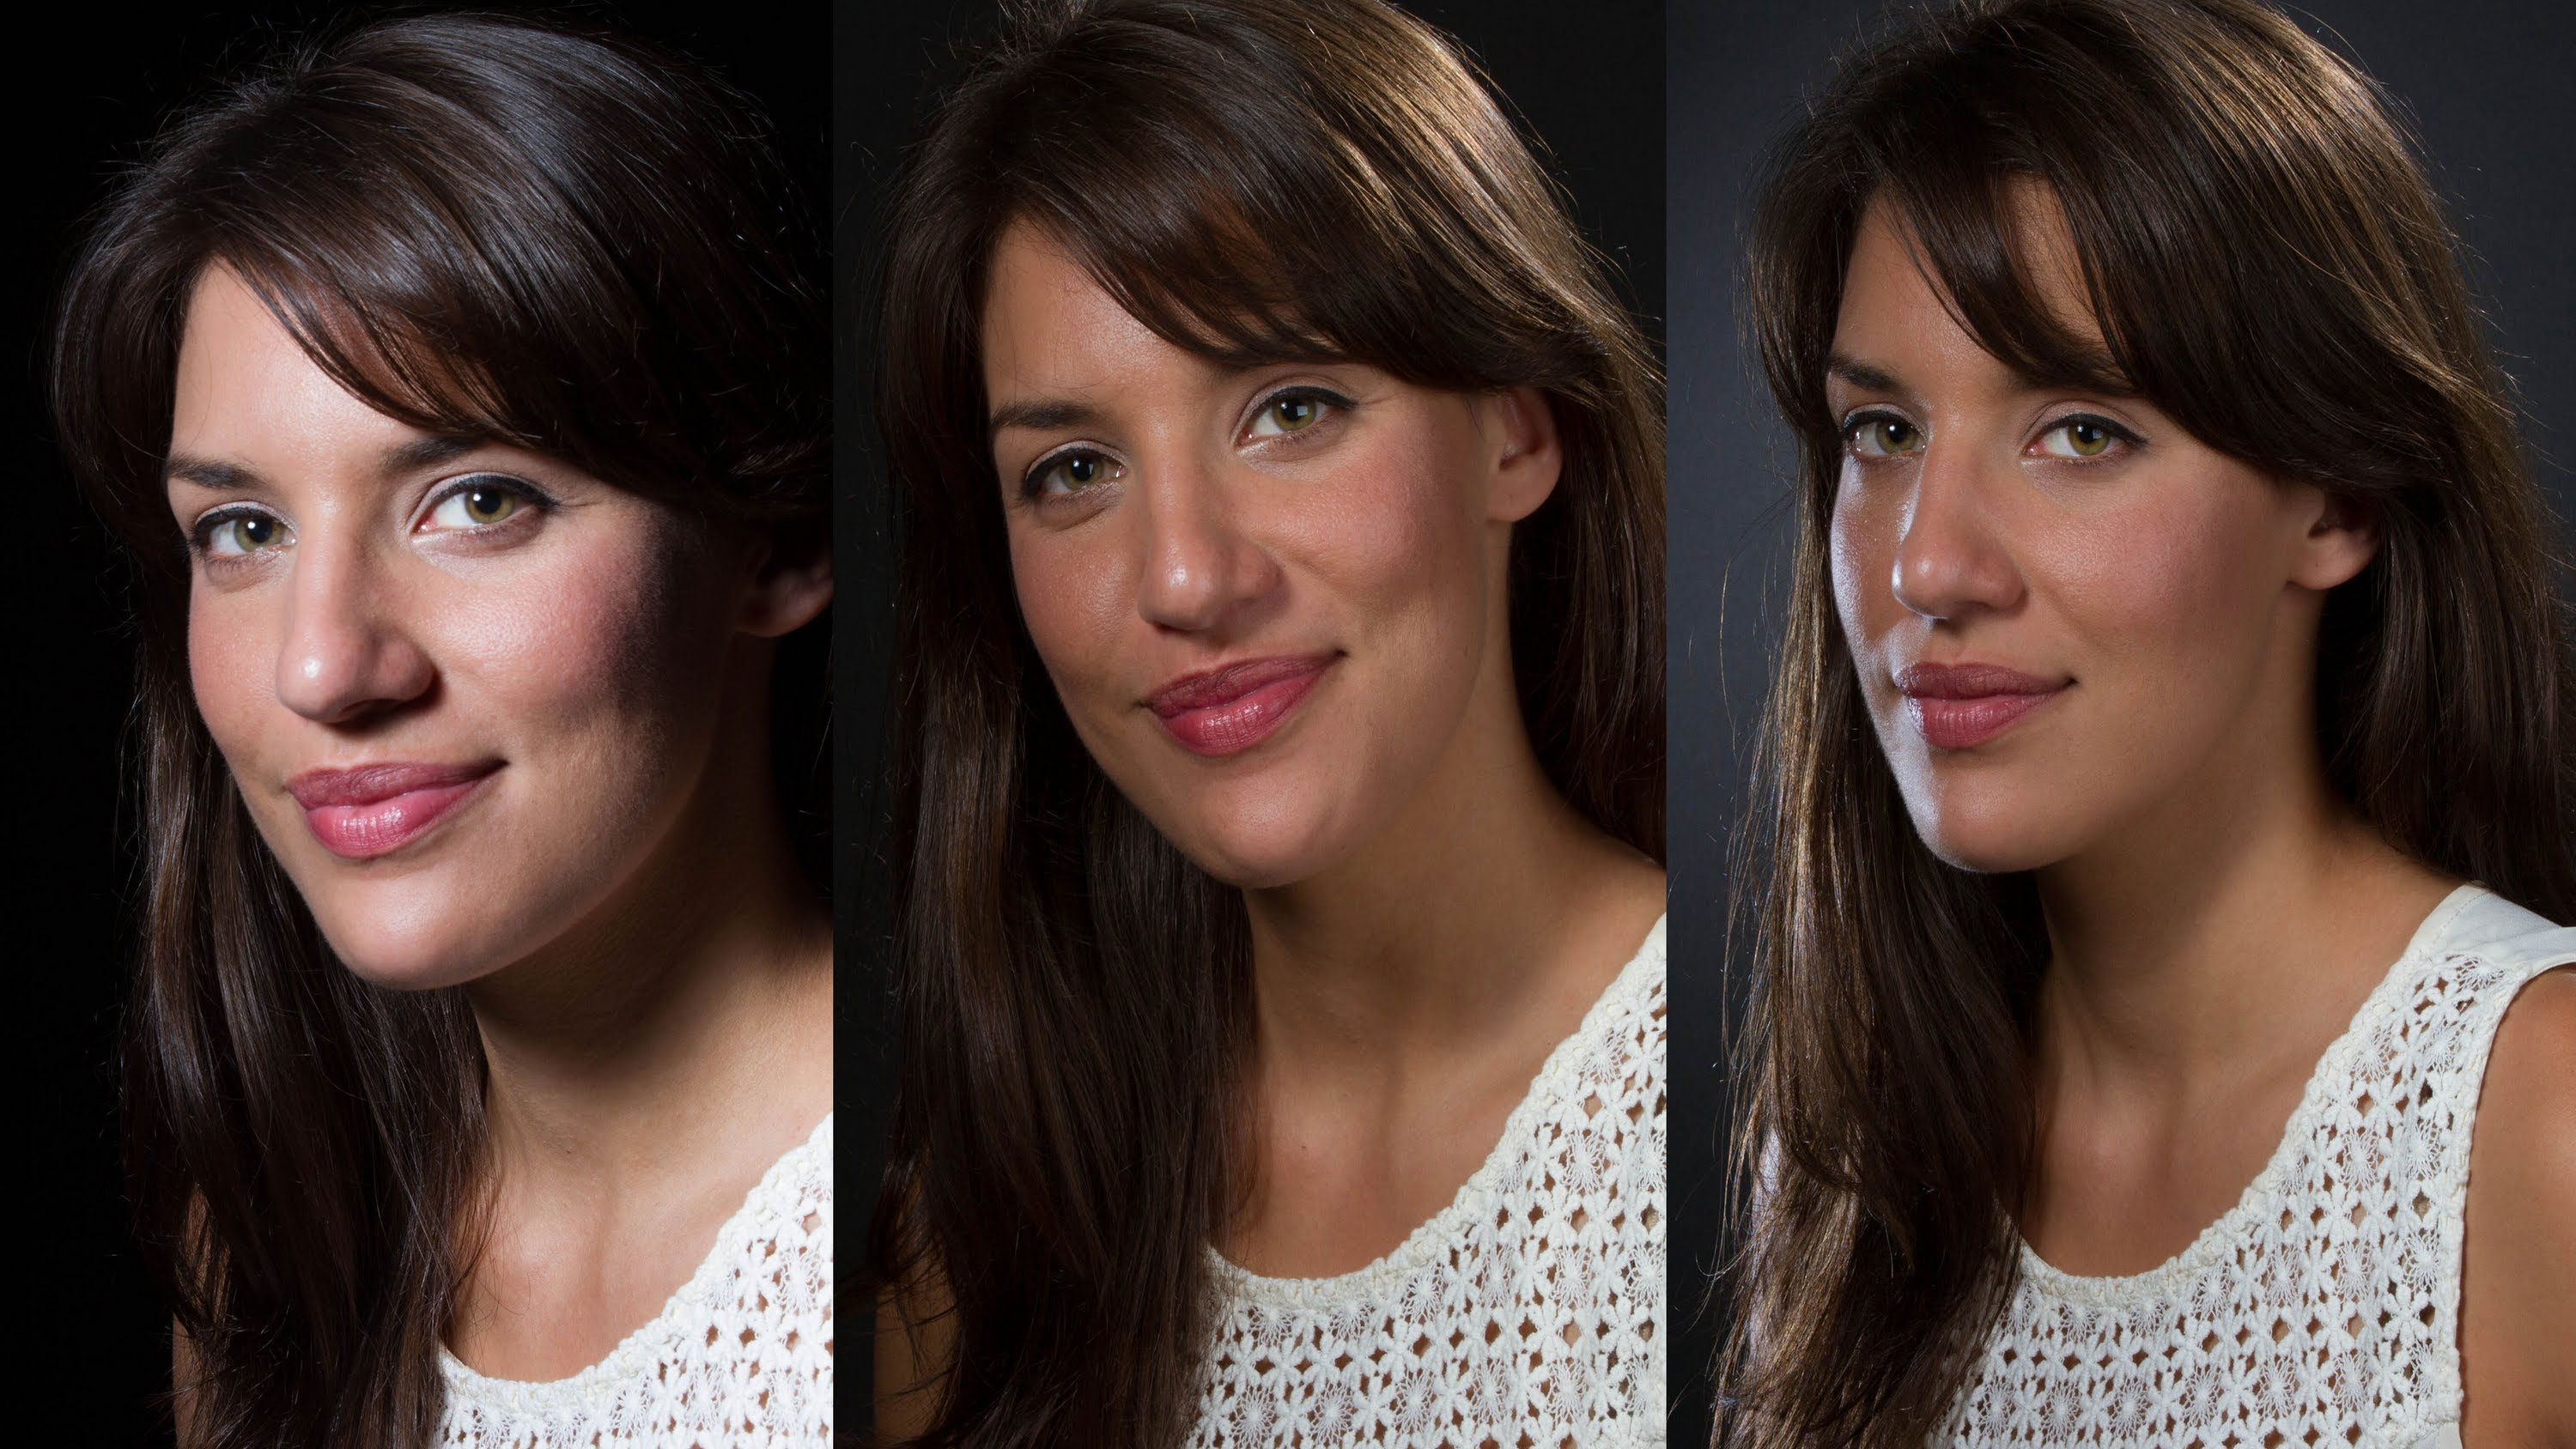 How to Use the Main Fill Hair Background and Kicker Lights in 3000x1688